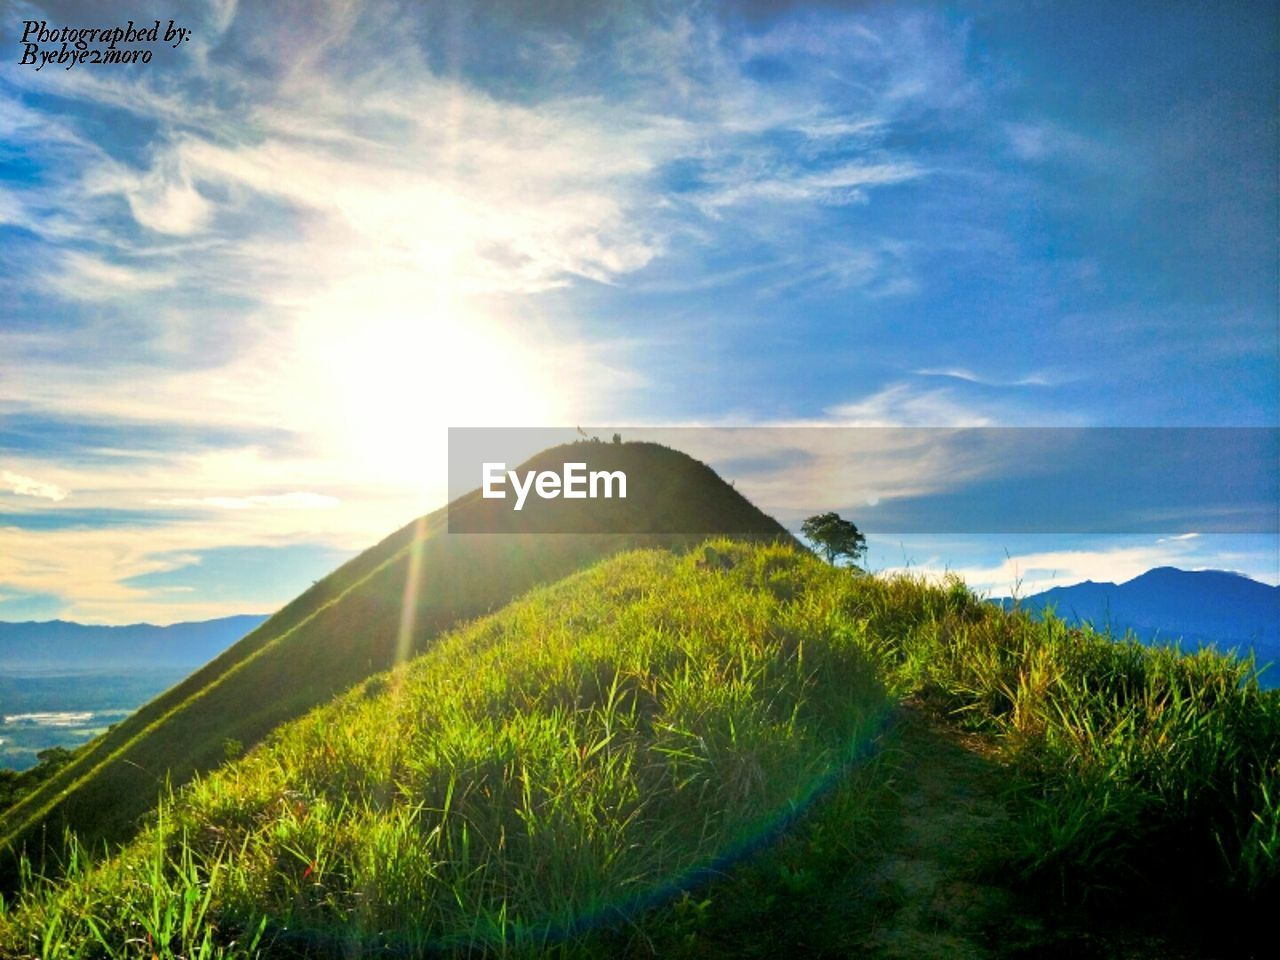 sky, nature, tranquility, tranquil scene, scenics, grass, beauty in nature, mountain, no people, sunlight, landscape, cloud - sky, growth, day, outdoors